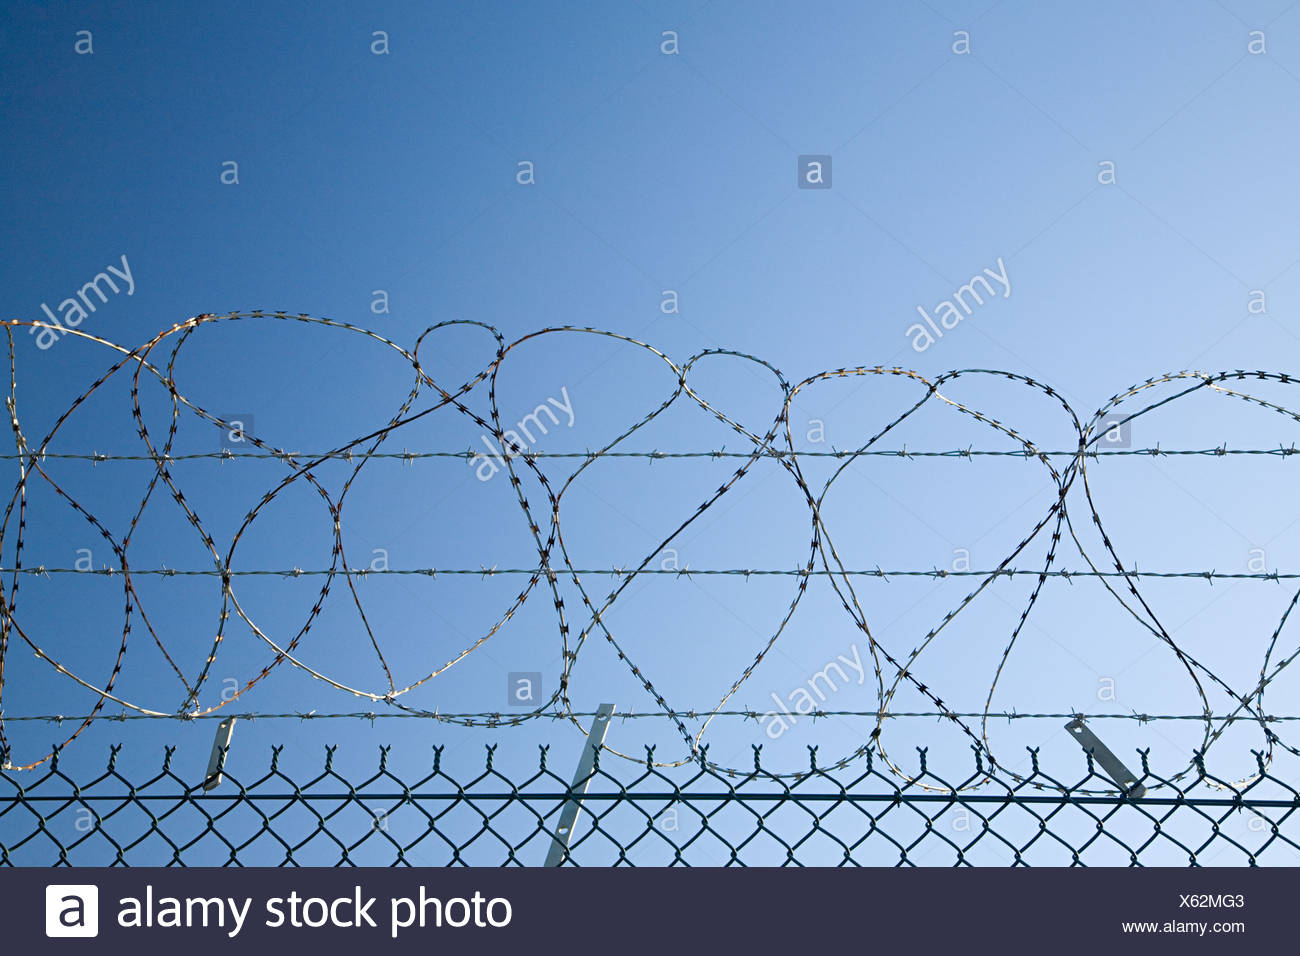 Barbed and razor wire on a fence Stock Photo: 279113859 - Alamy